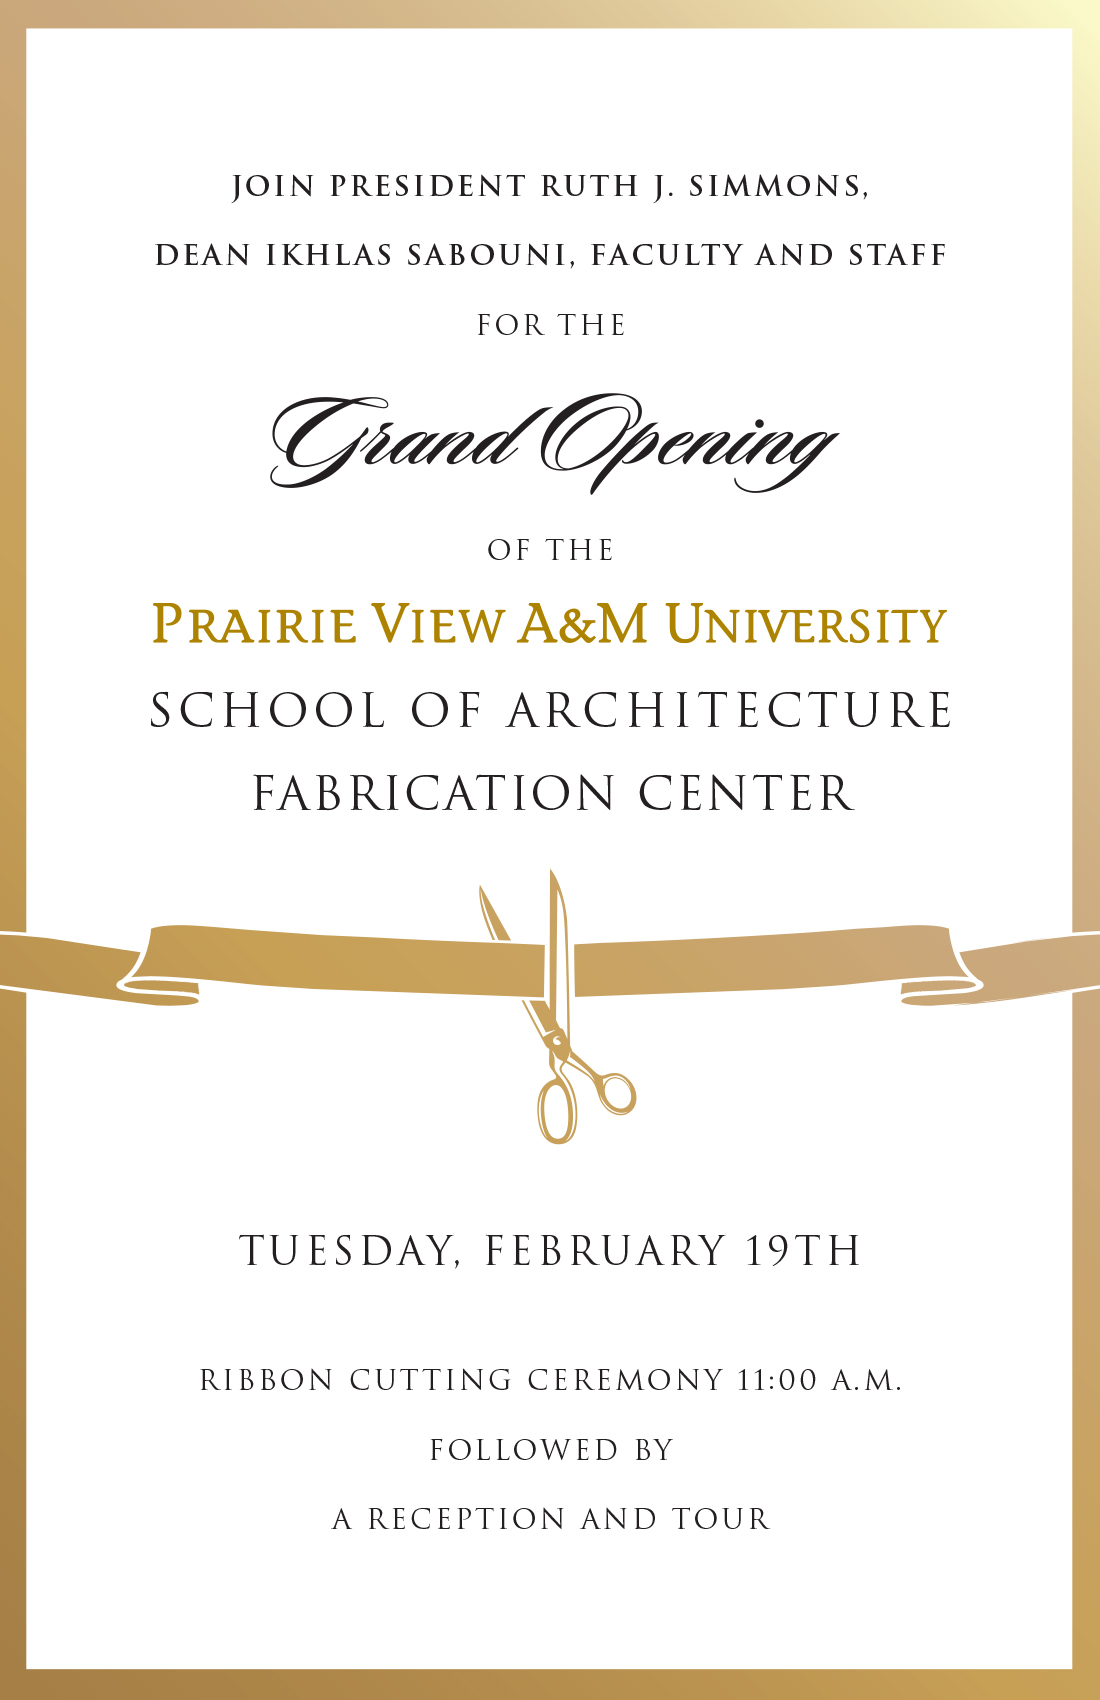 Ribbon Cutting Announcement